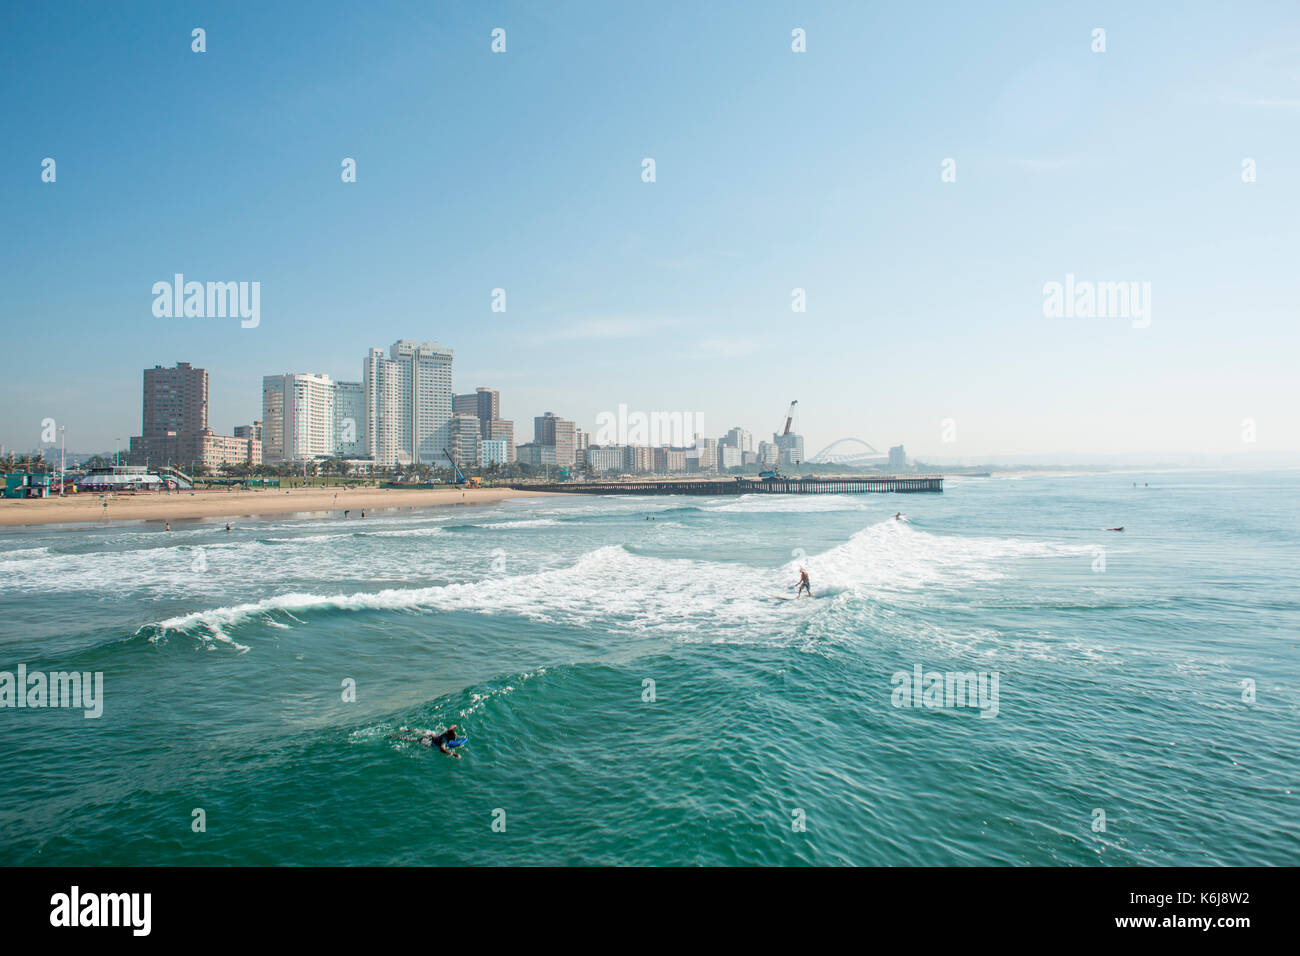 Surfers riding waves near pier on Golden Mile with skyline of Durban, South Africa - Stock Image